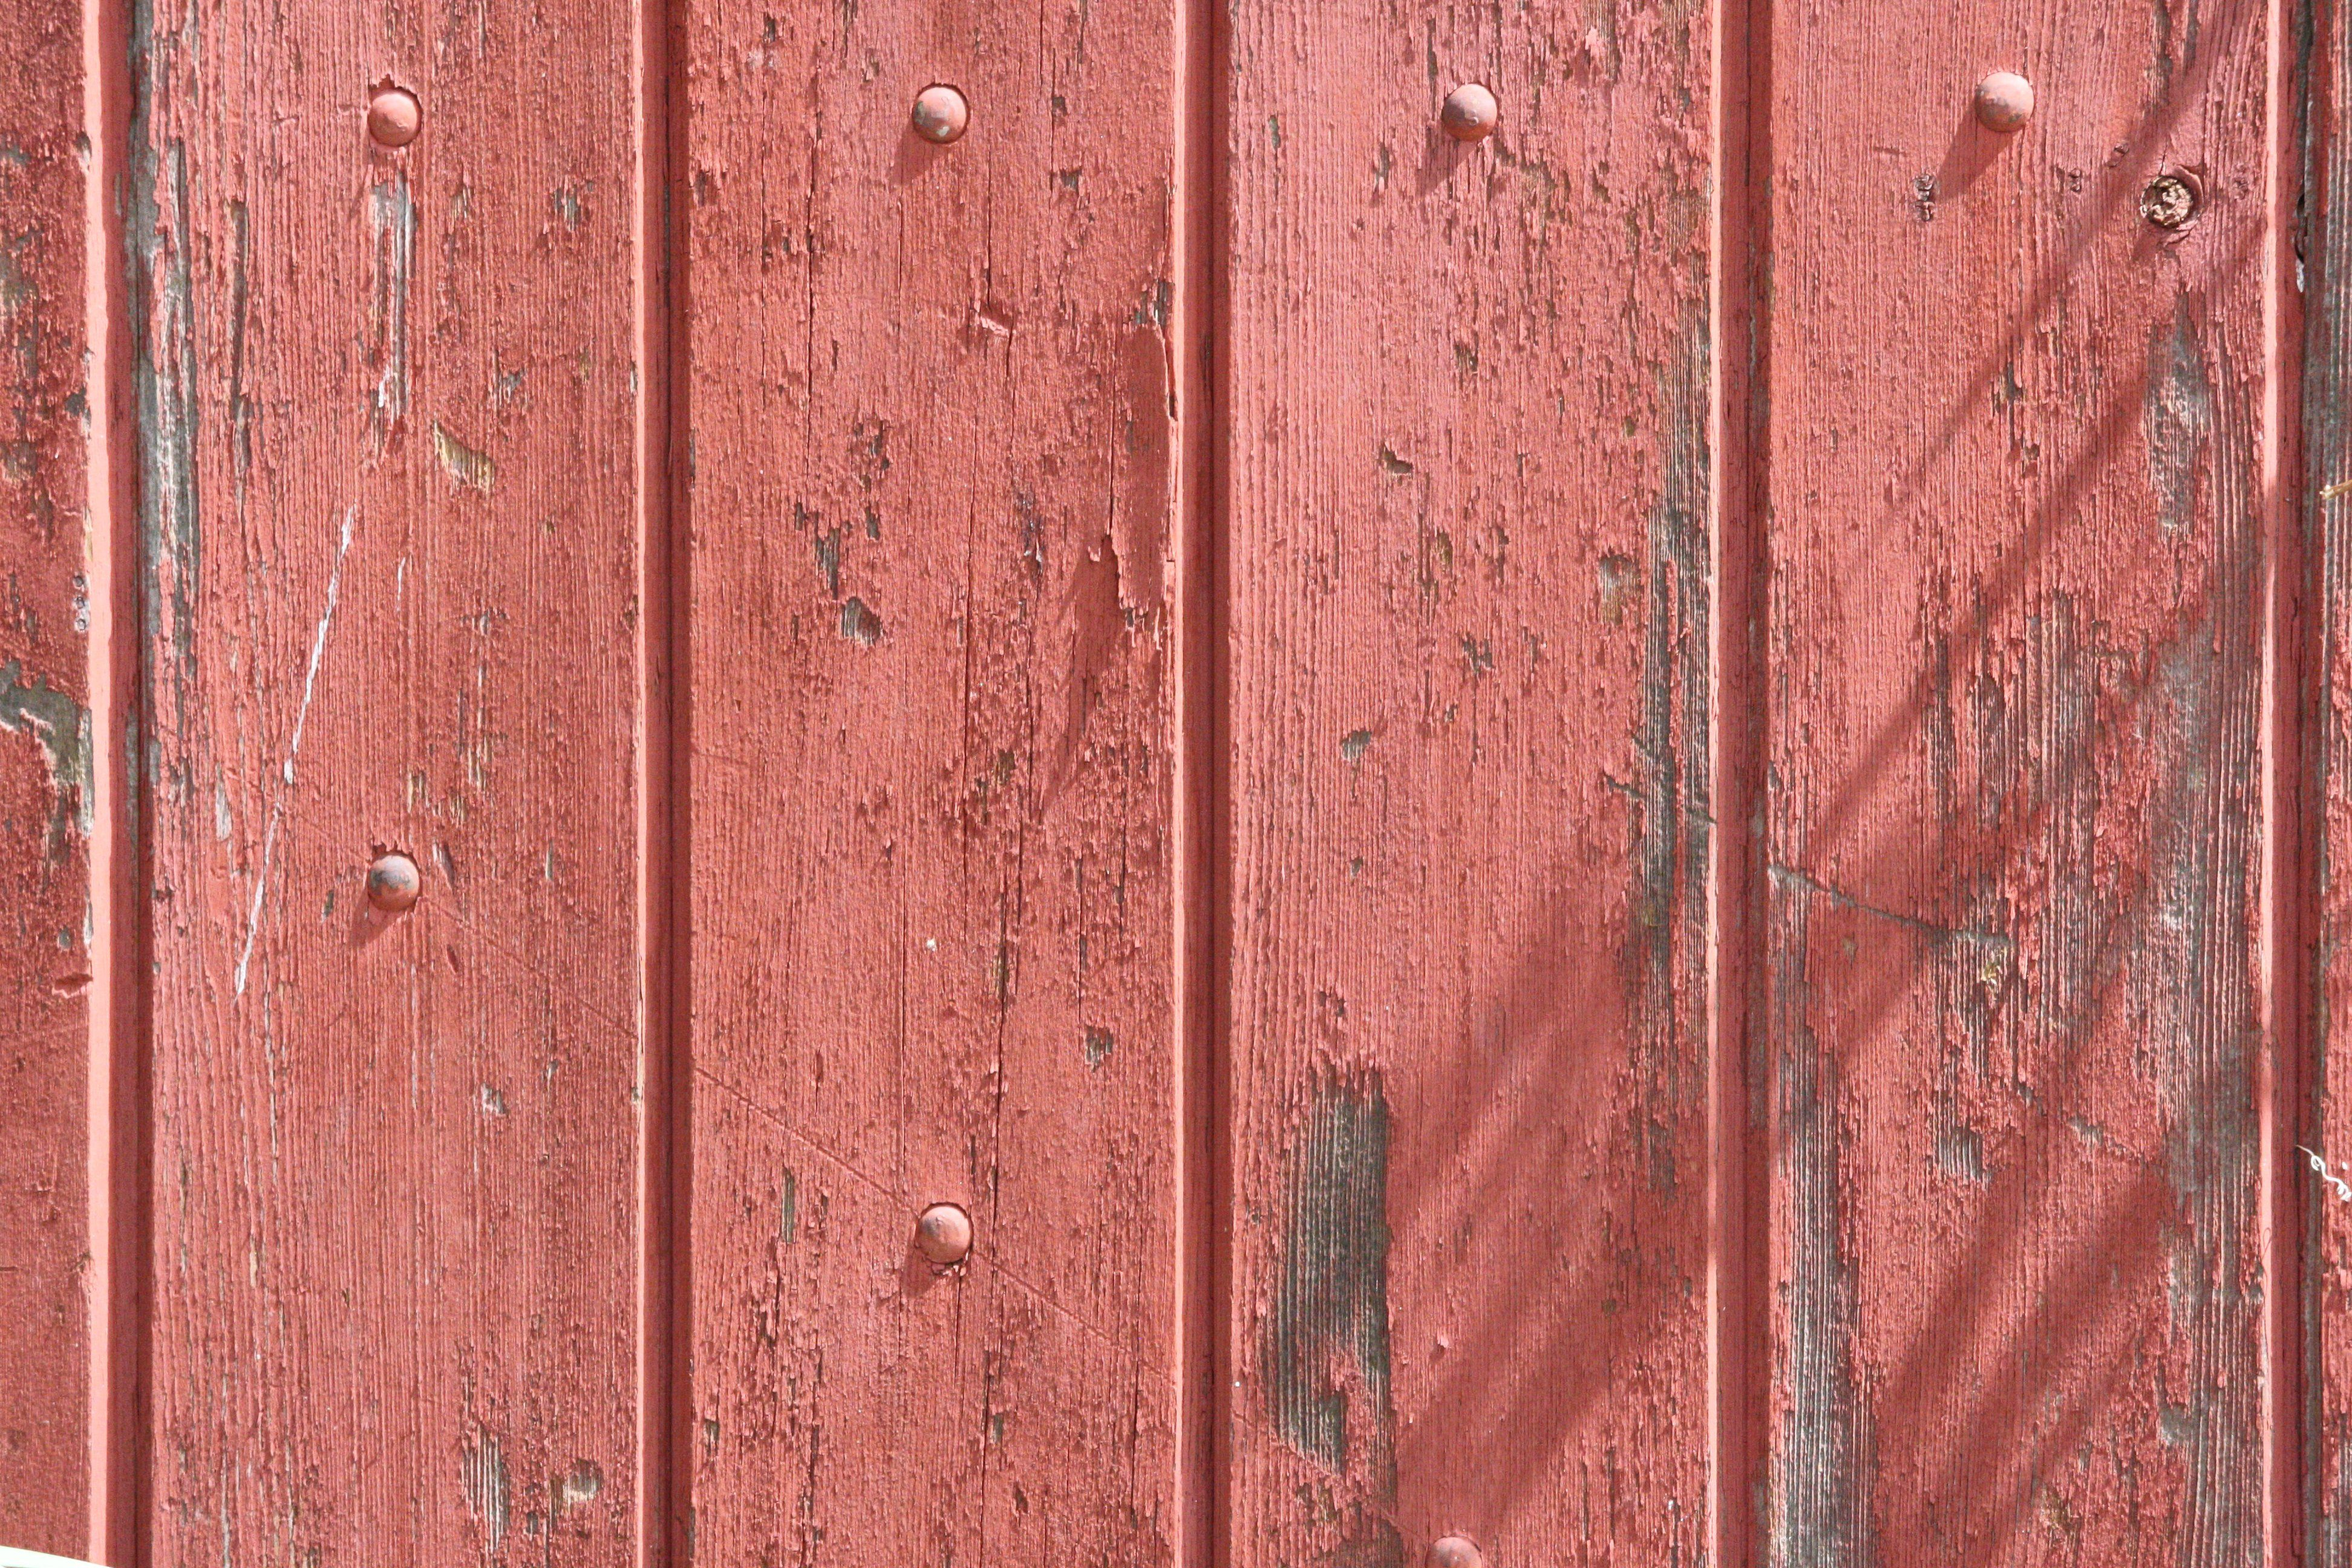 Old wood fence with peeling red paint texture web design old wood fence with peeling red paint texture baanklon Images